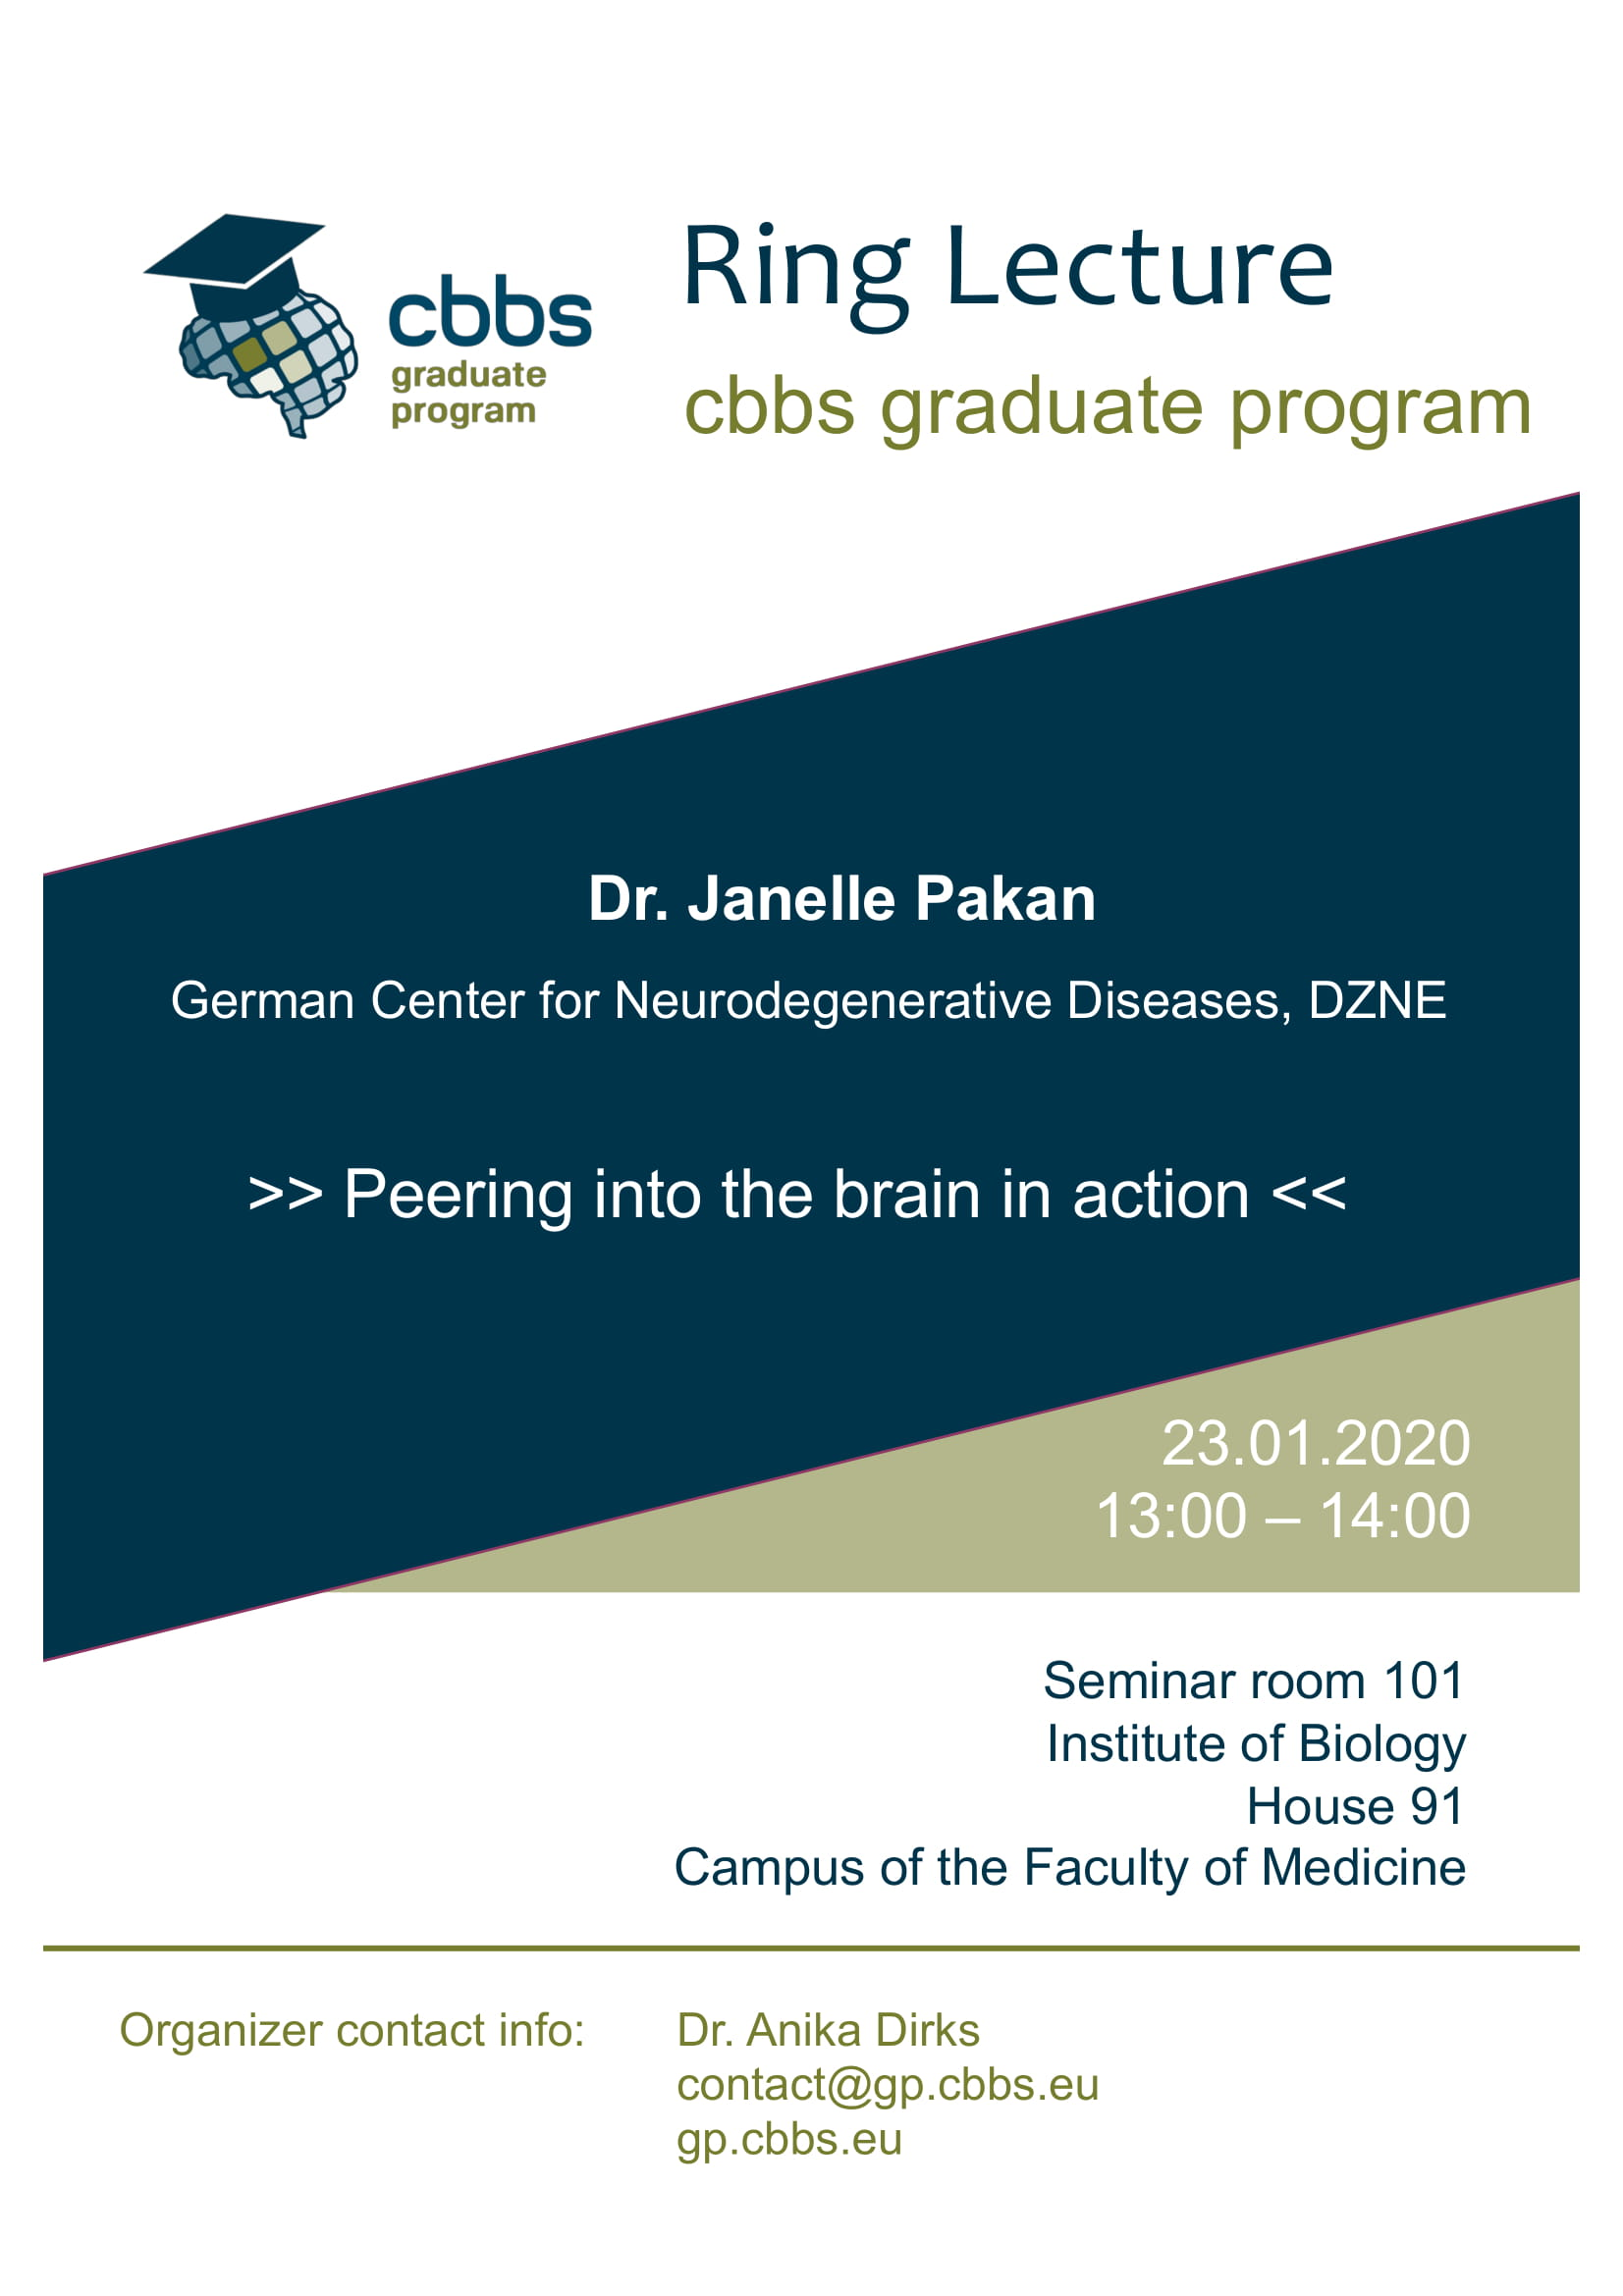 CBBS GP Ring Lecture: Peering into the brain in action @ Institure for Biology, House 91, seminar room 101